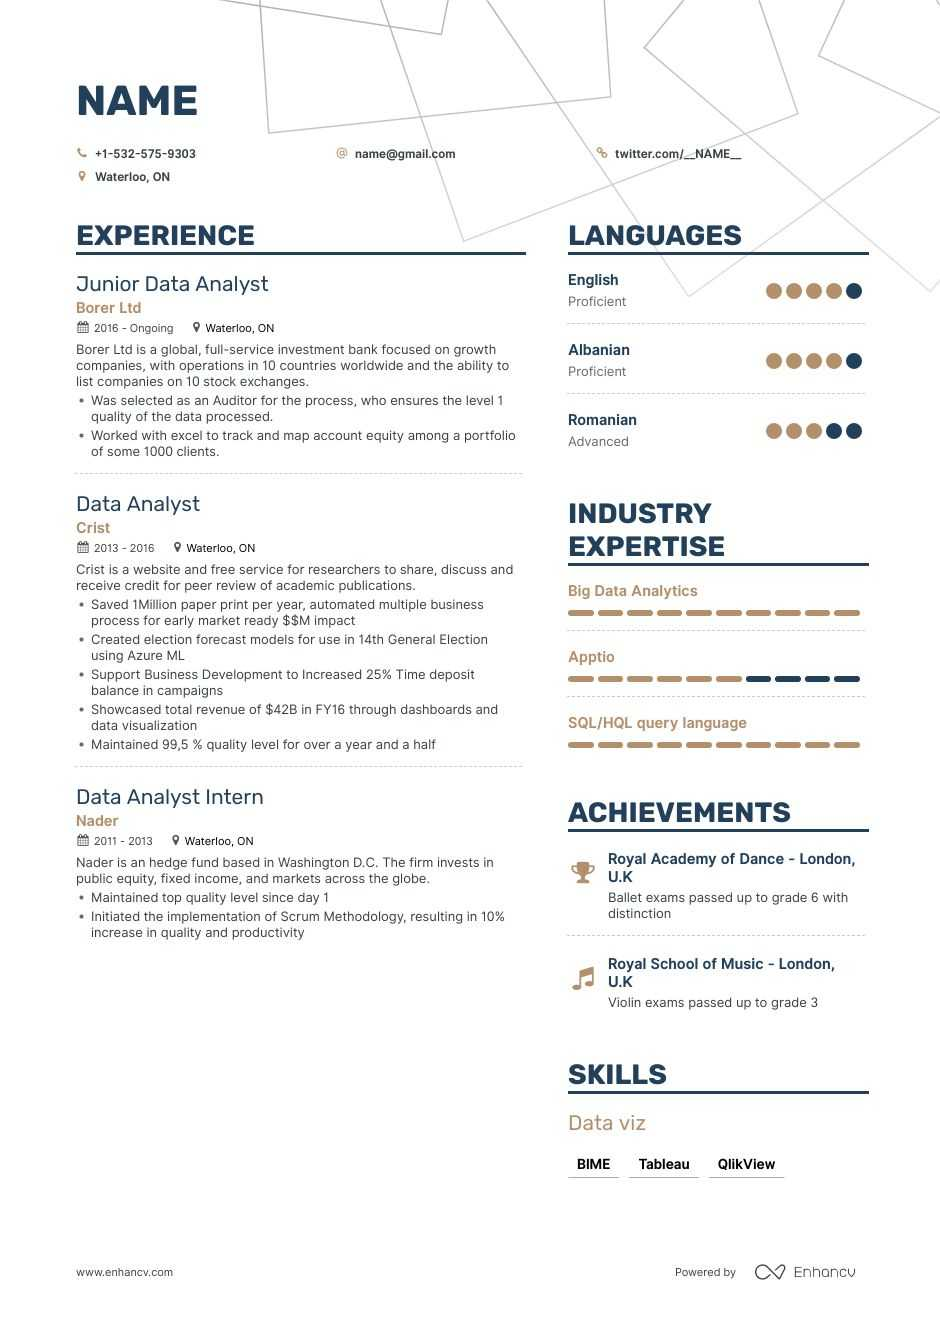 security analyst resume examples skills templates more for cyber keywords writing paper Resume Cyber Security Resume Keywords